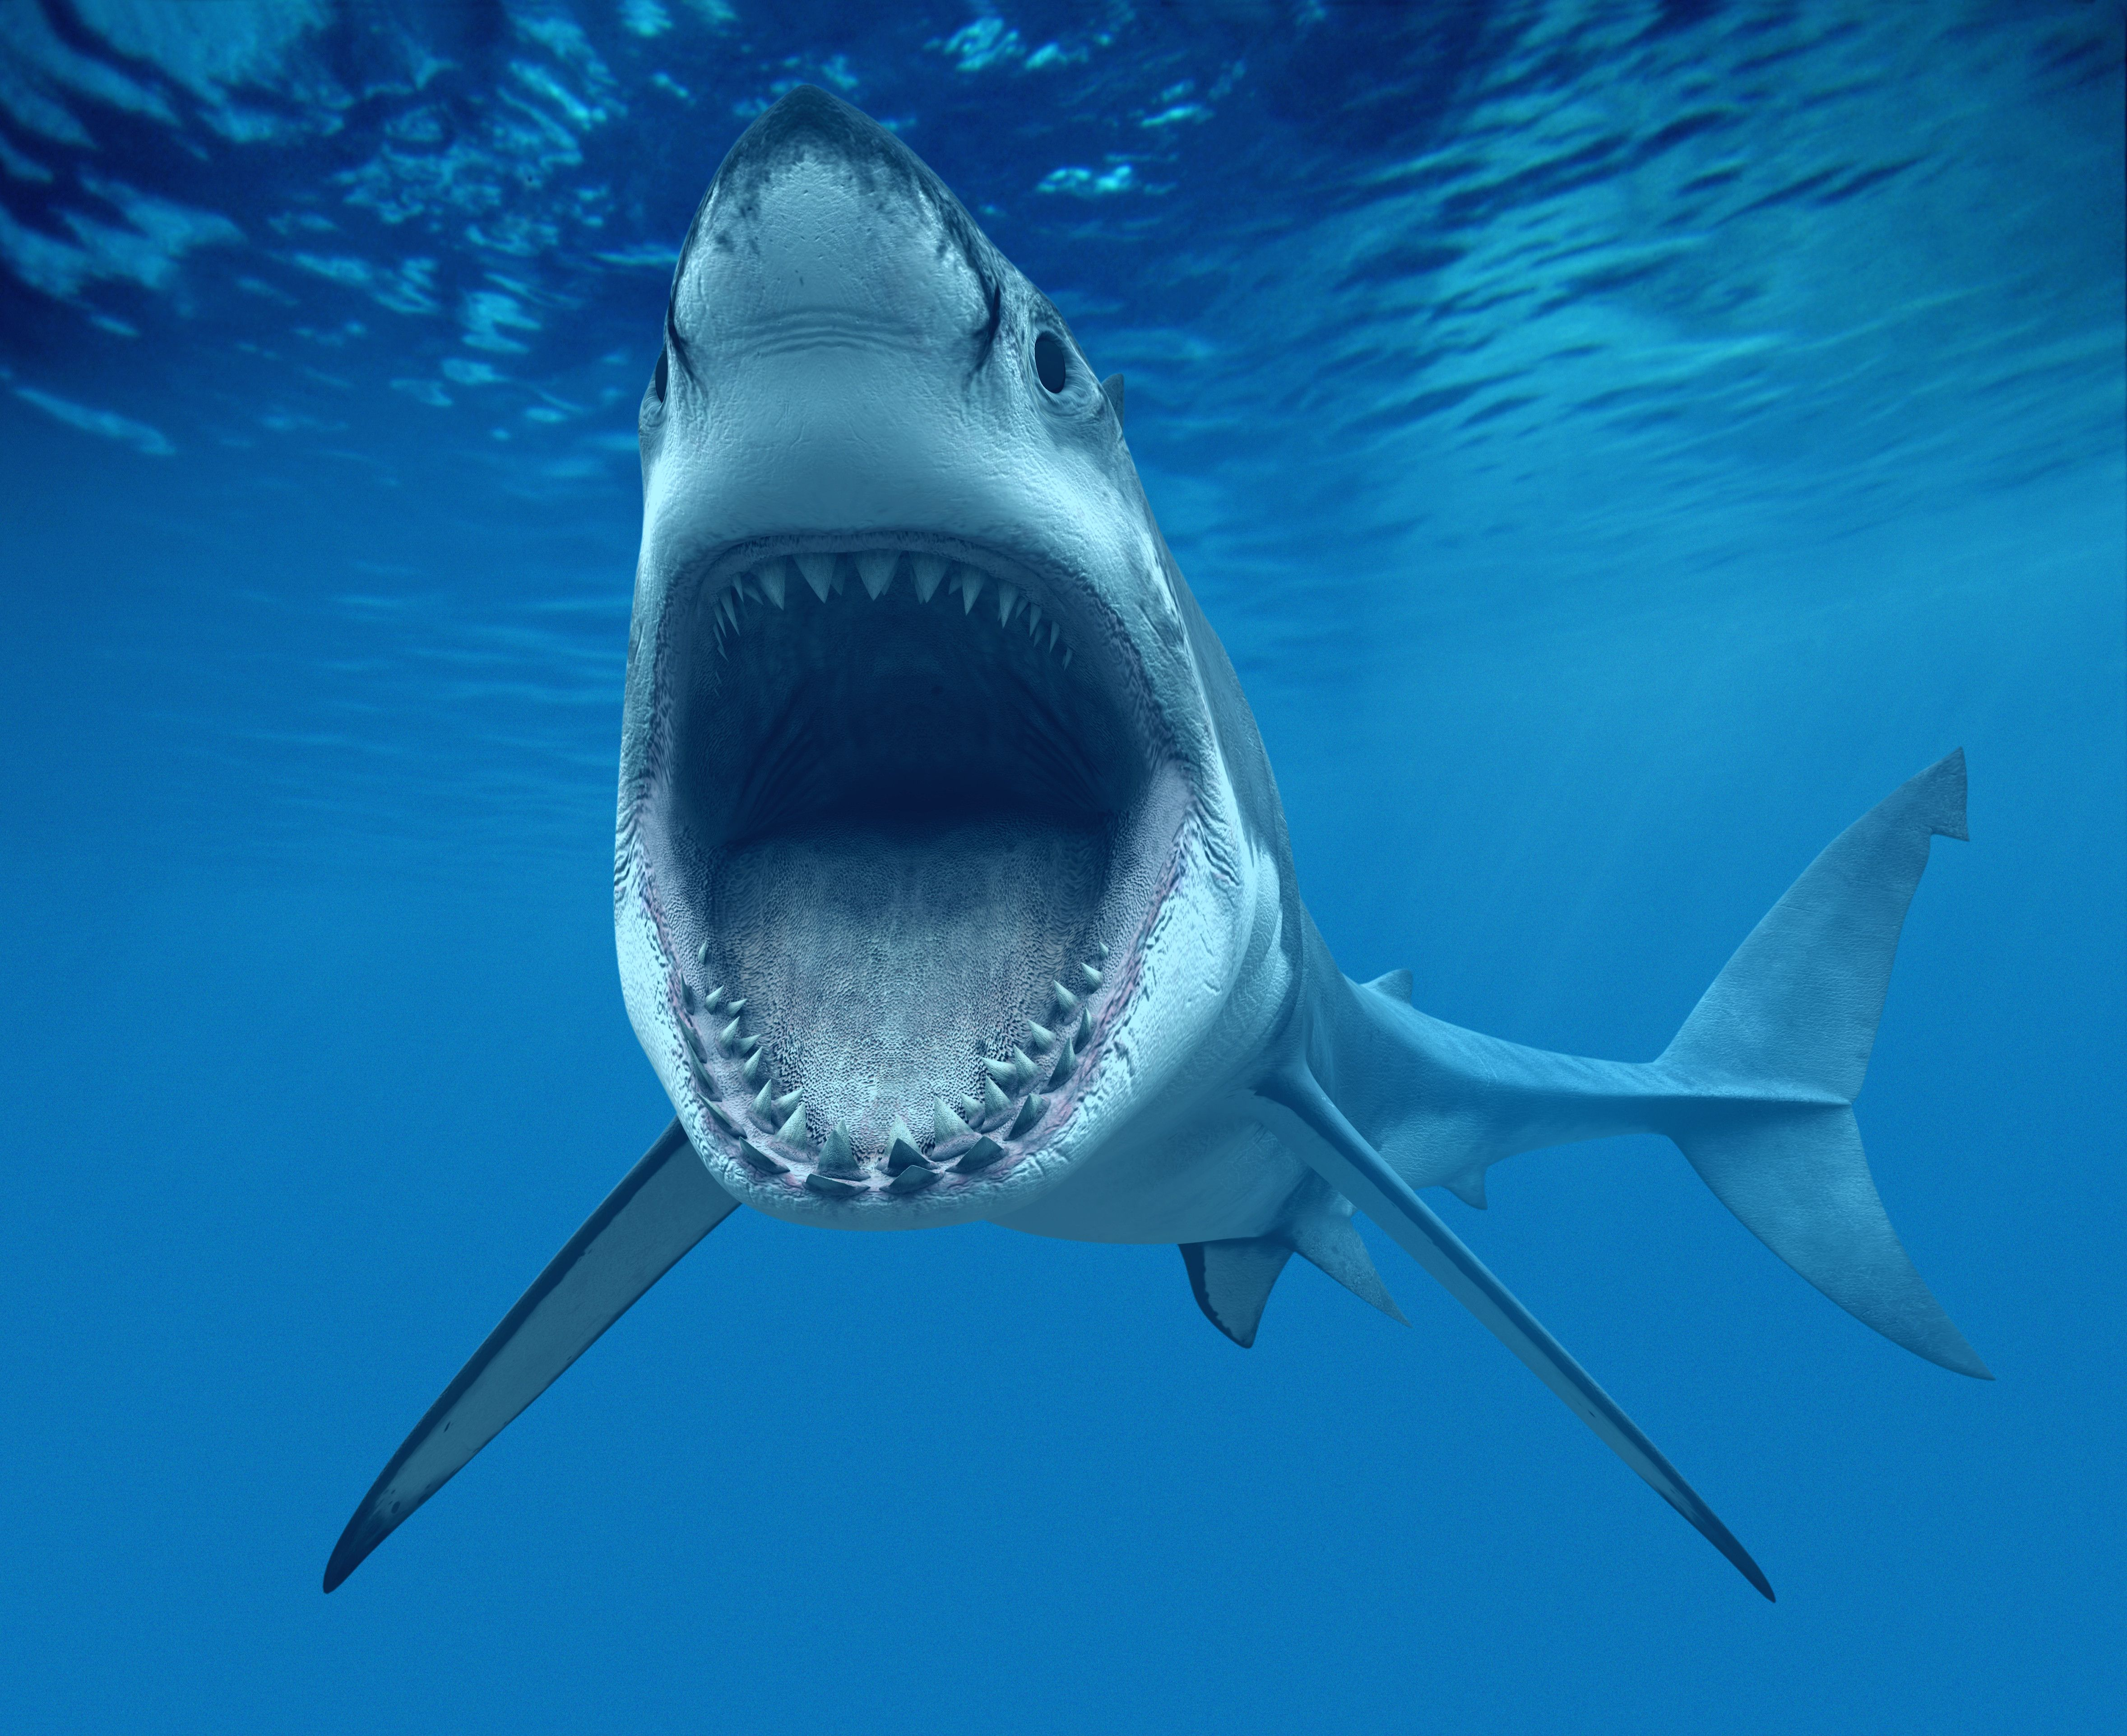 shark attack myths and facts debunked shark animal and ocean